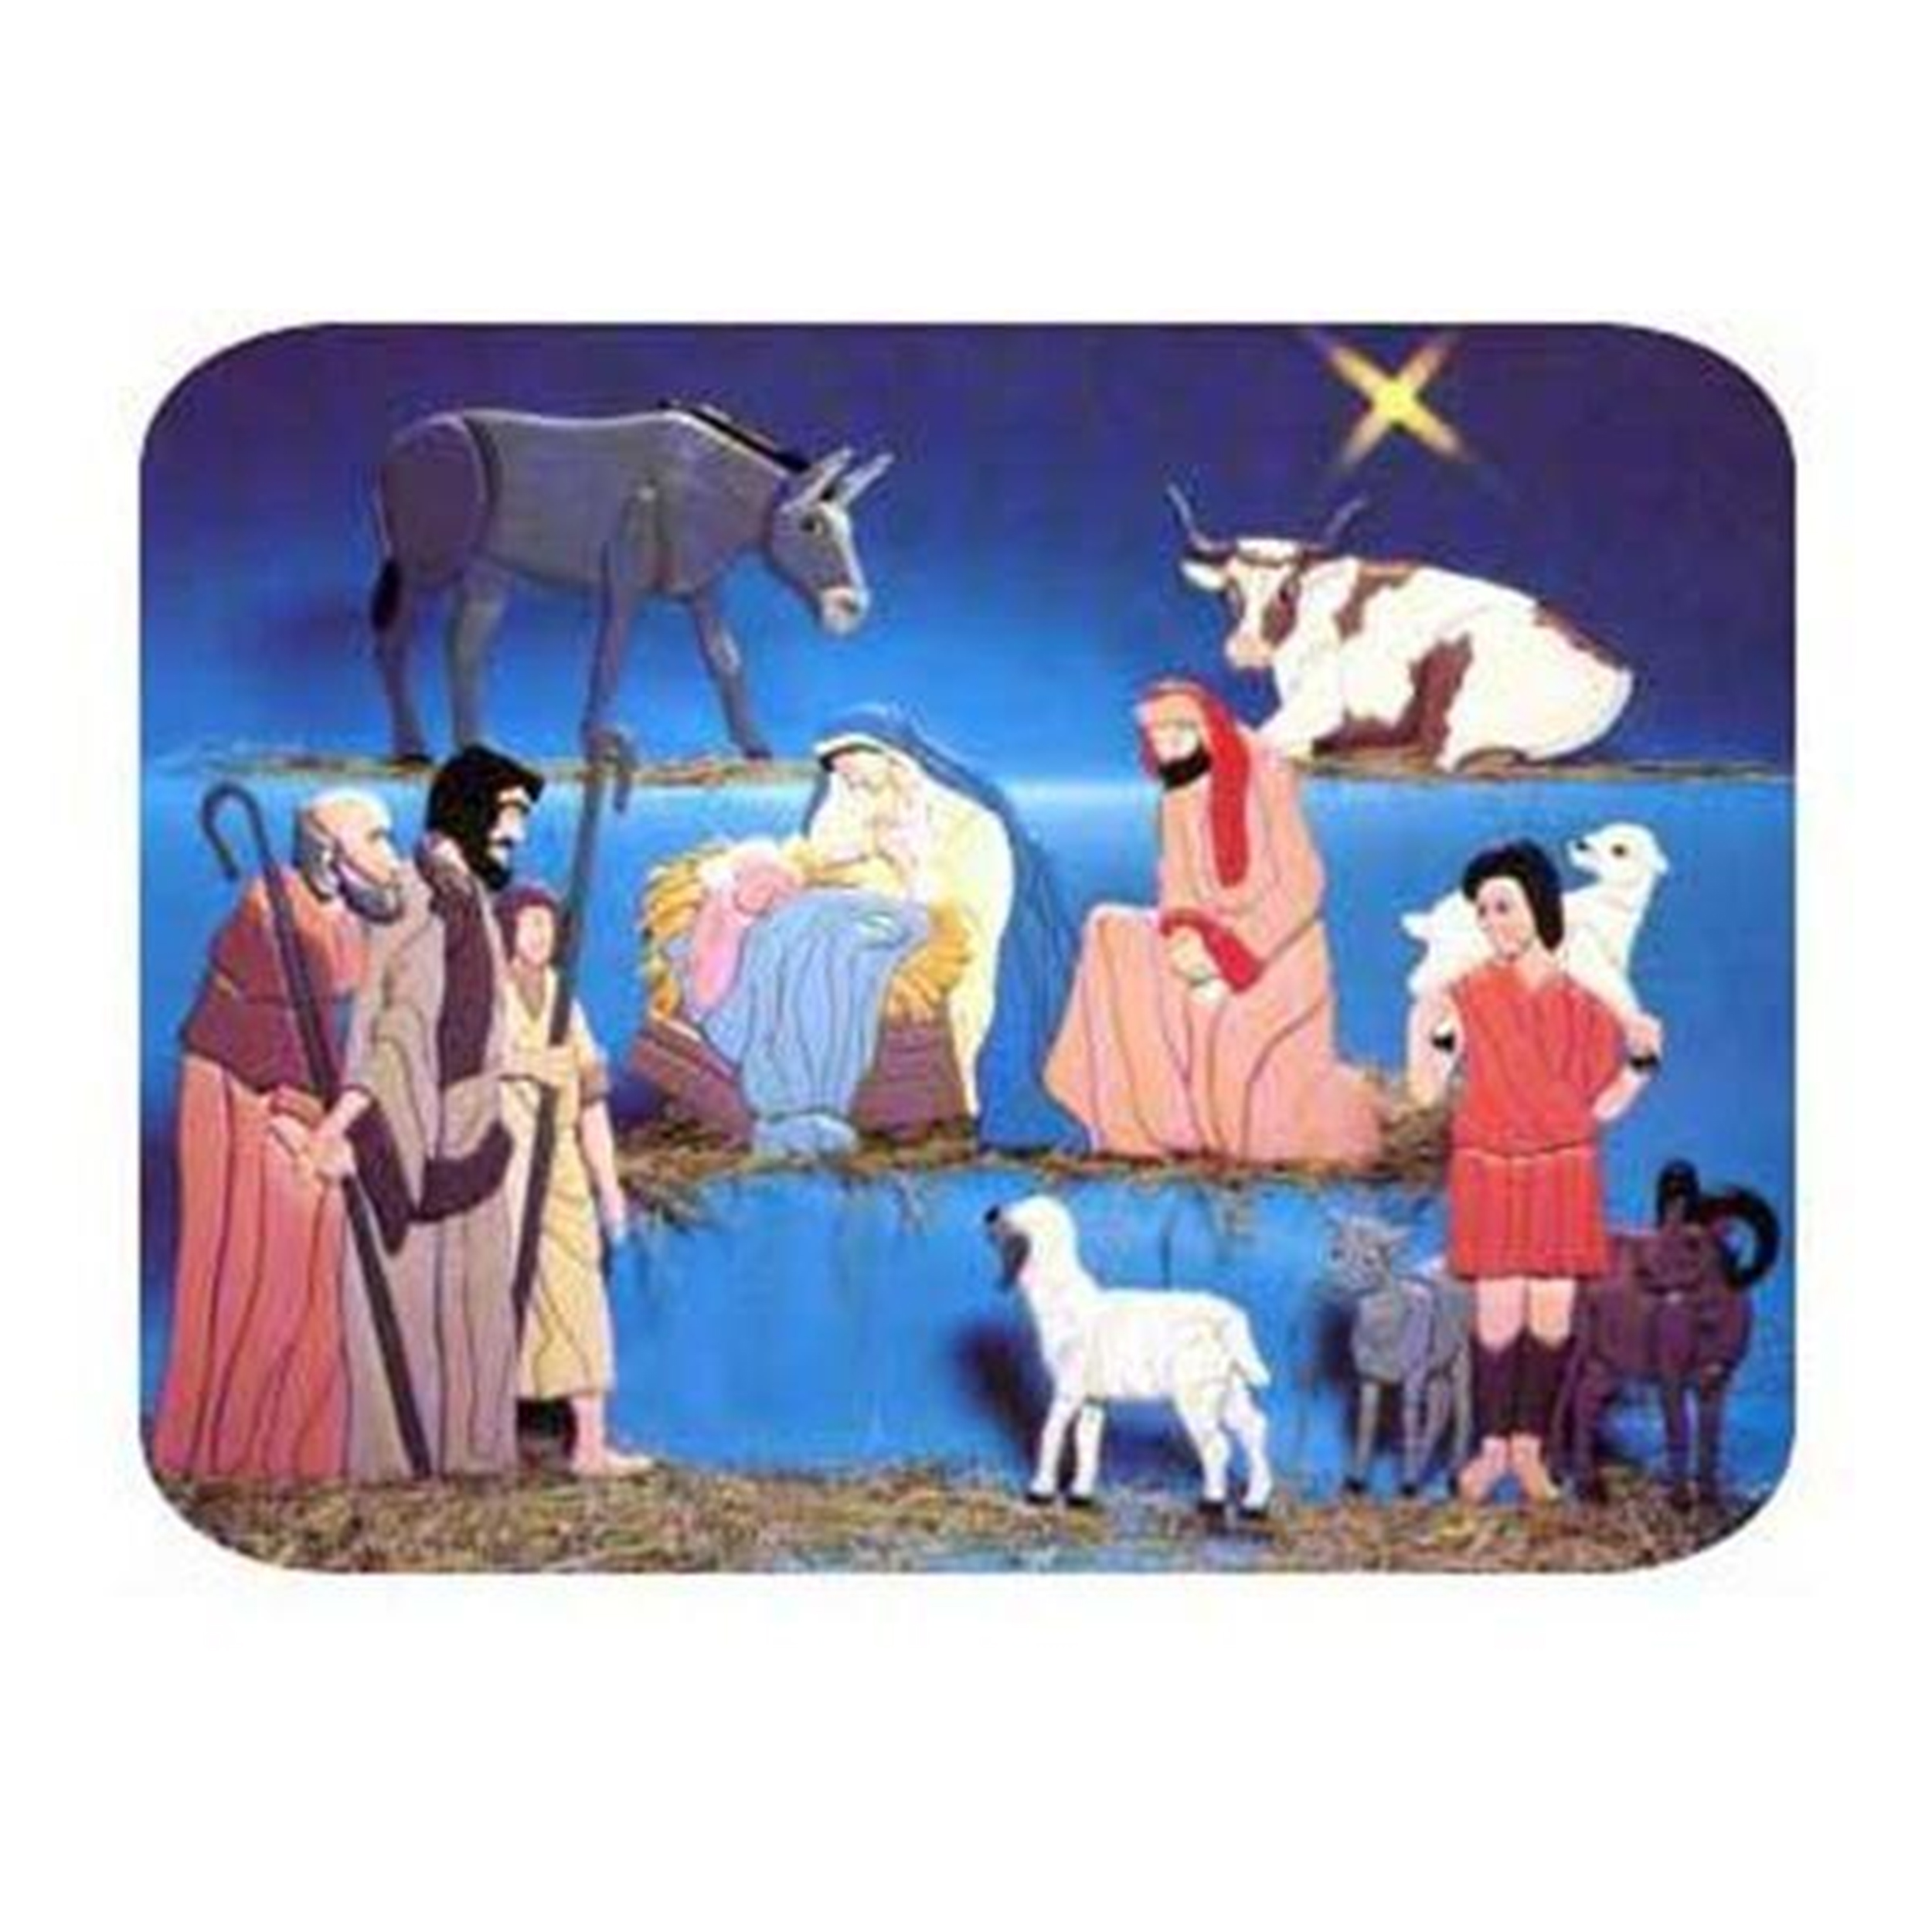 Woodworking Project Paper Plan to Build Intarsia Nativity Scene